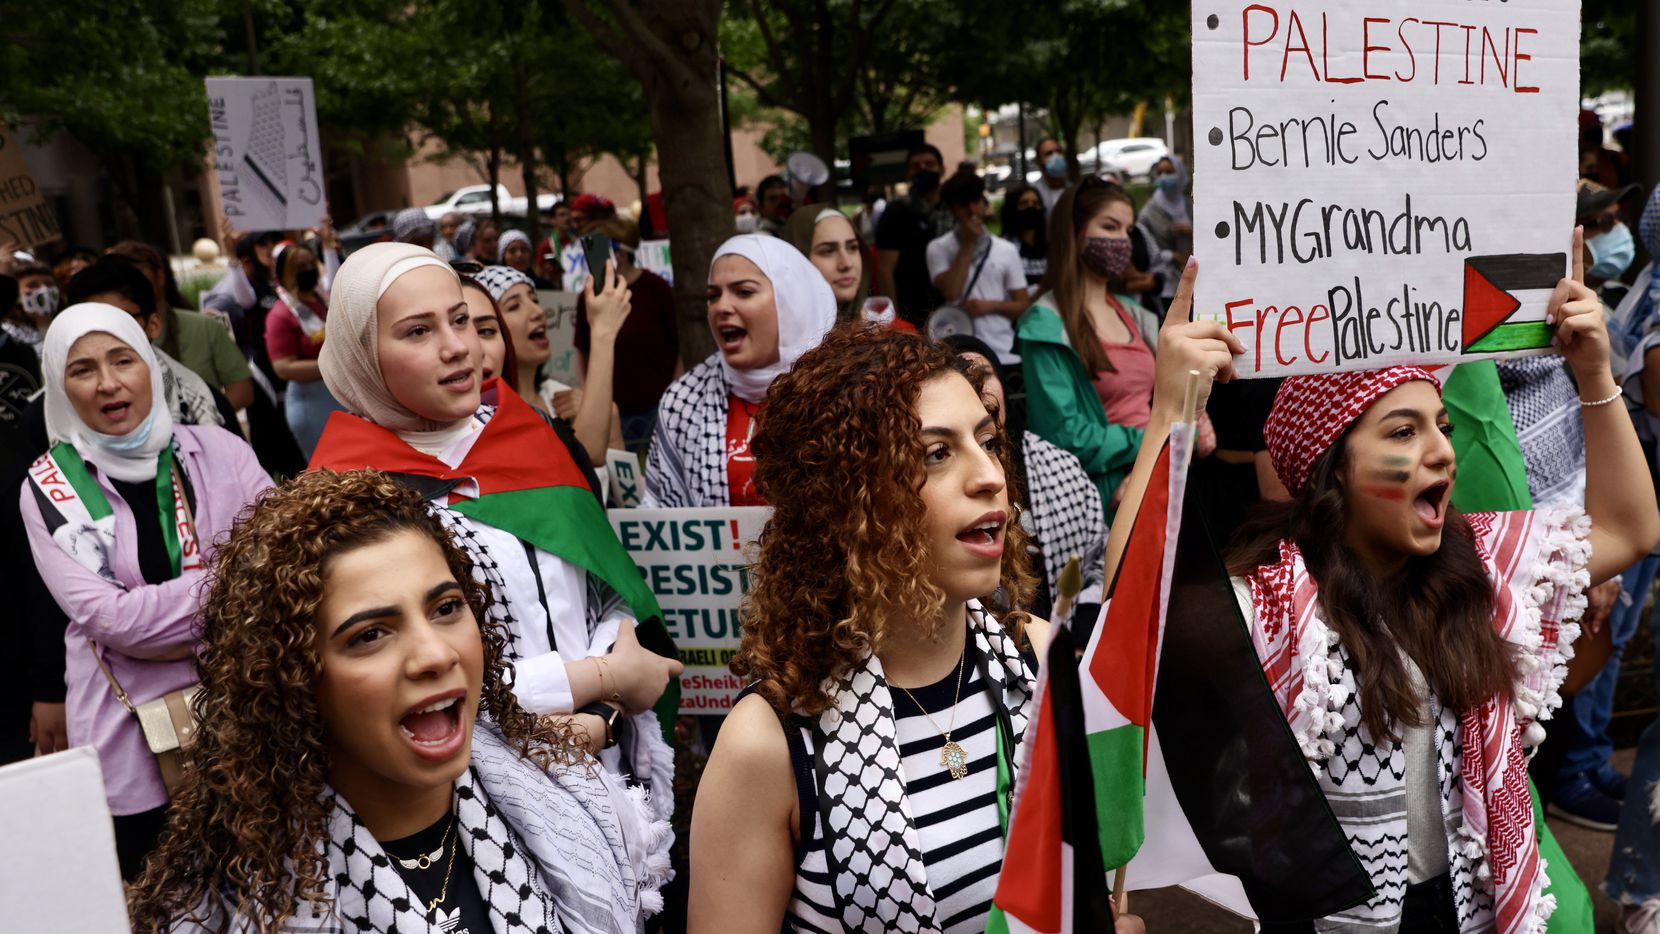 Sisters Iman (from left), Jumana, and Soondos Aboukarr were part of the pro-Palestine crowd at Sunday afternoon's demonstration in downtown Dallas.